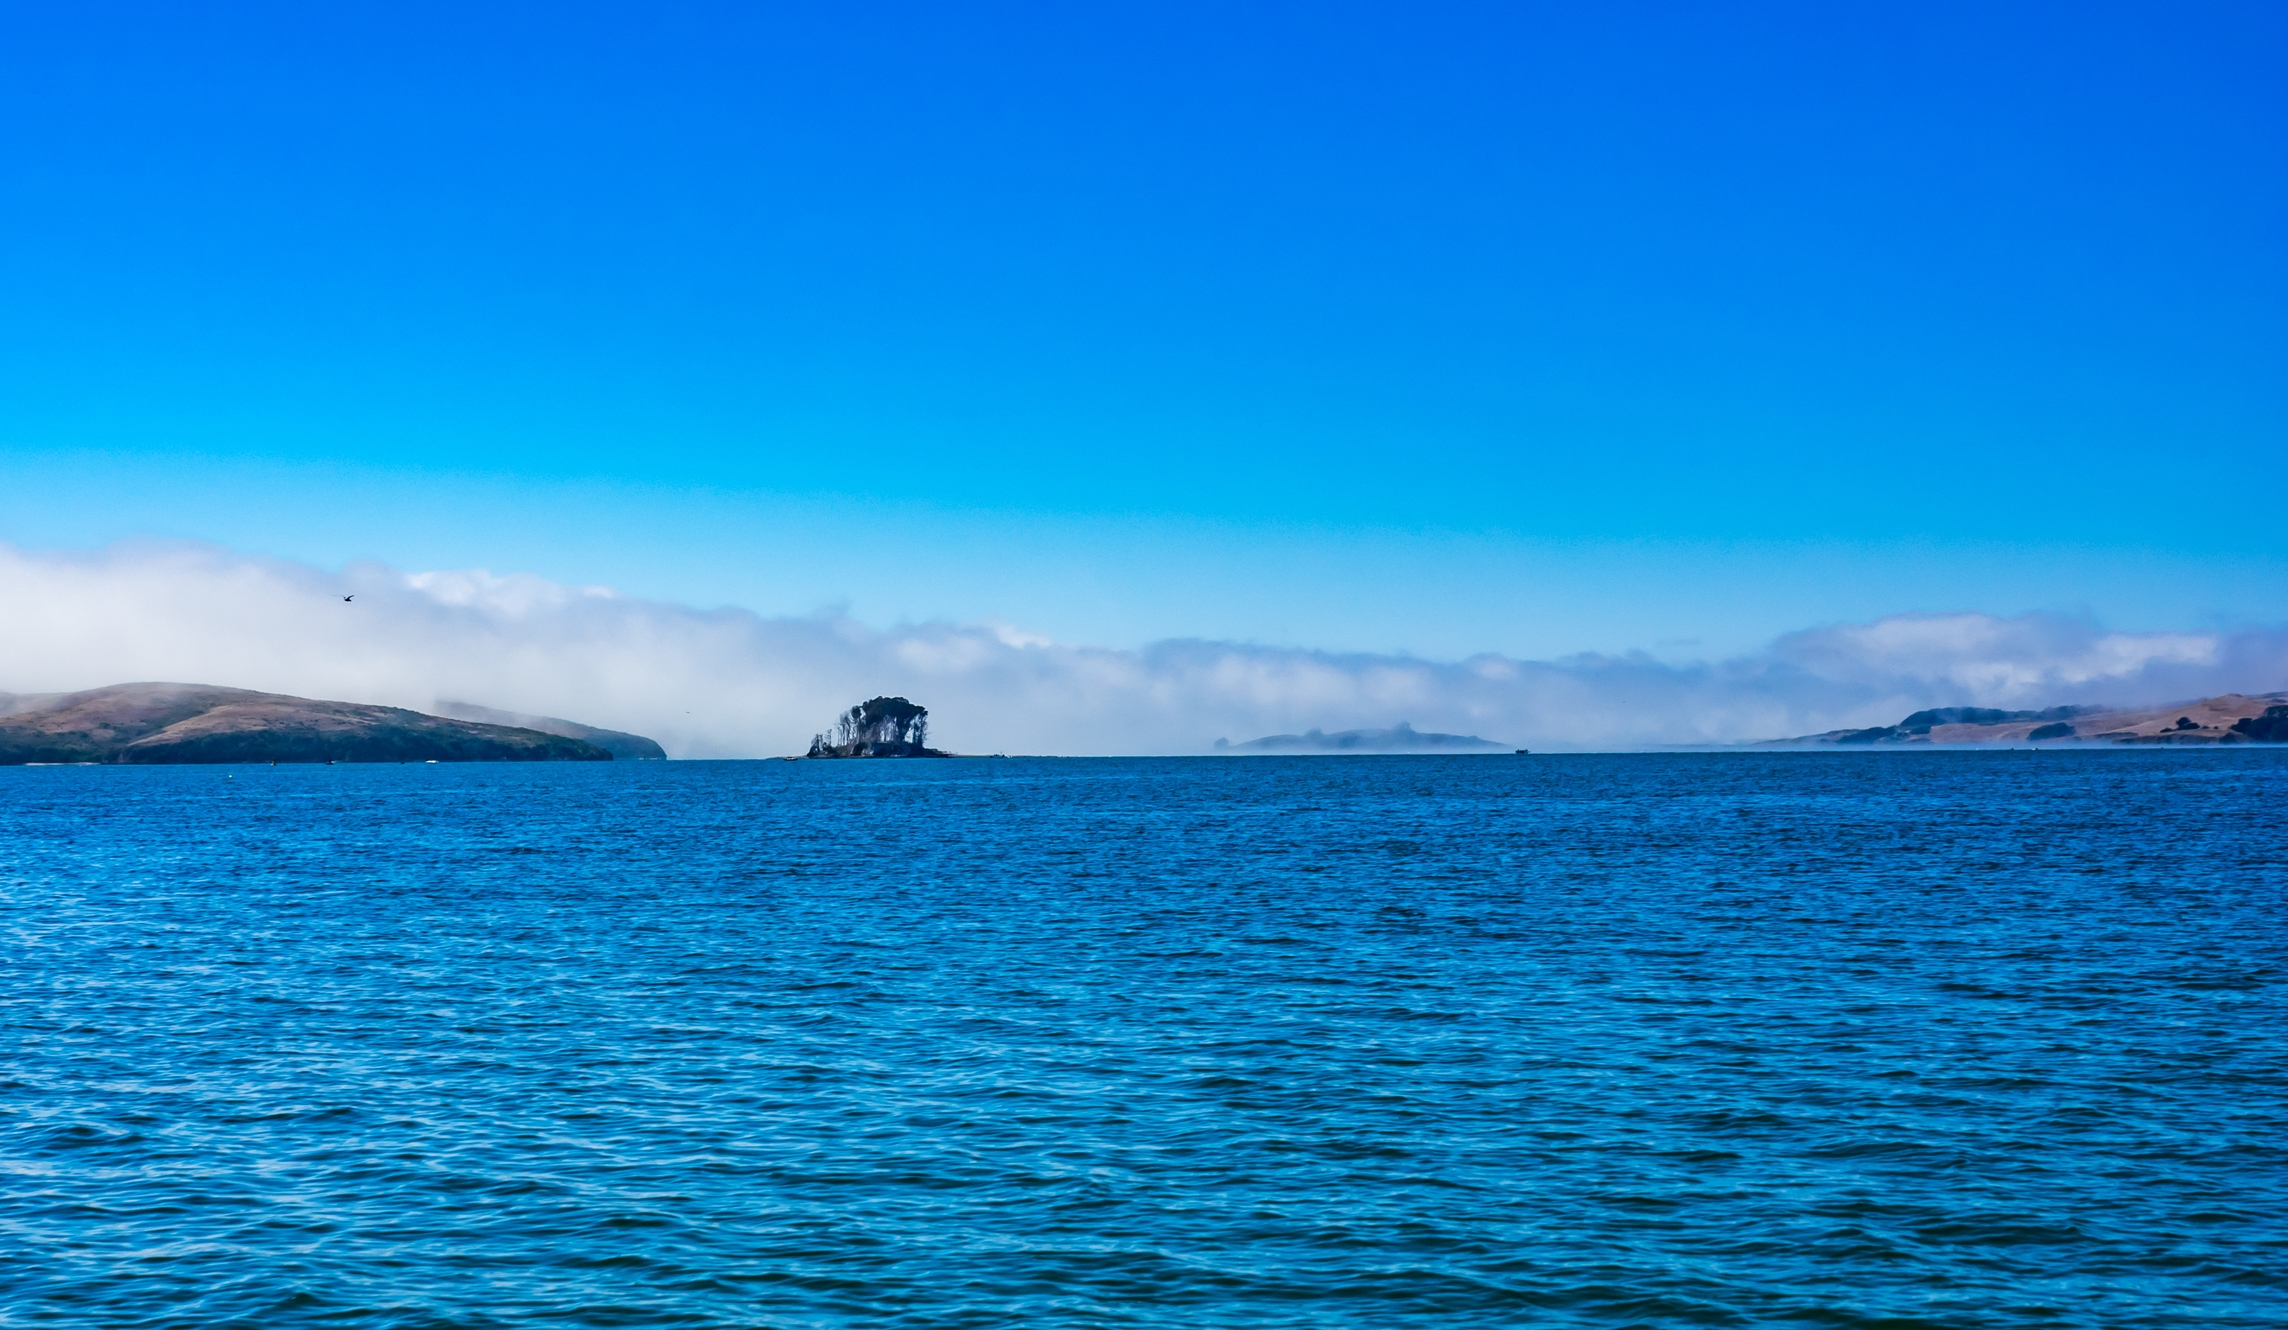 Another sunny day on the water in Tomales Bay, CA. Photo by Aaron Ninokawa